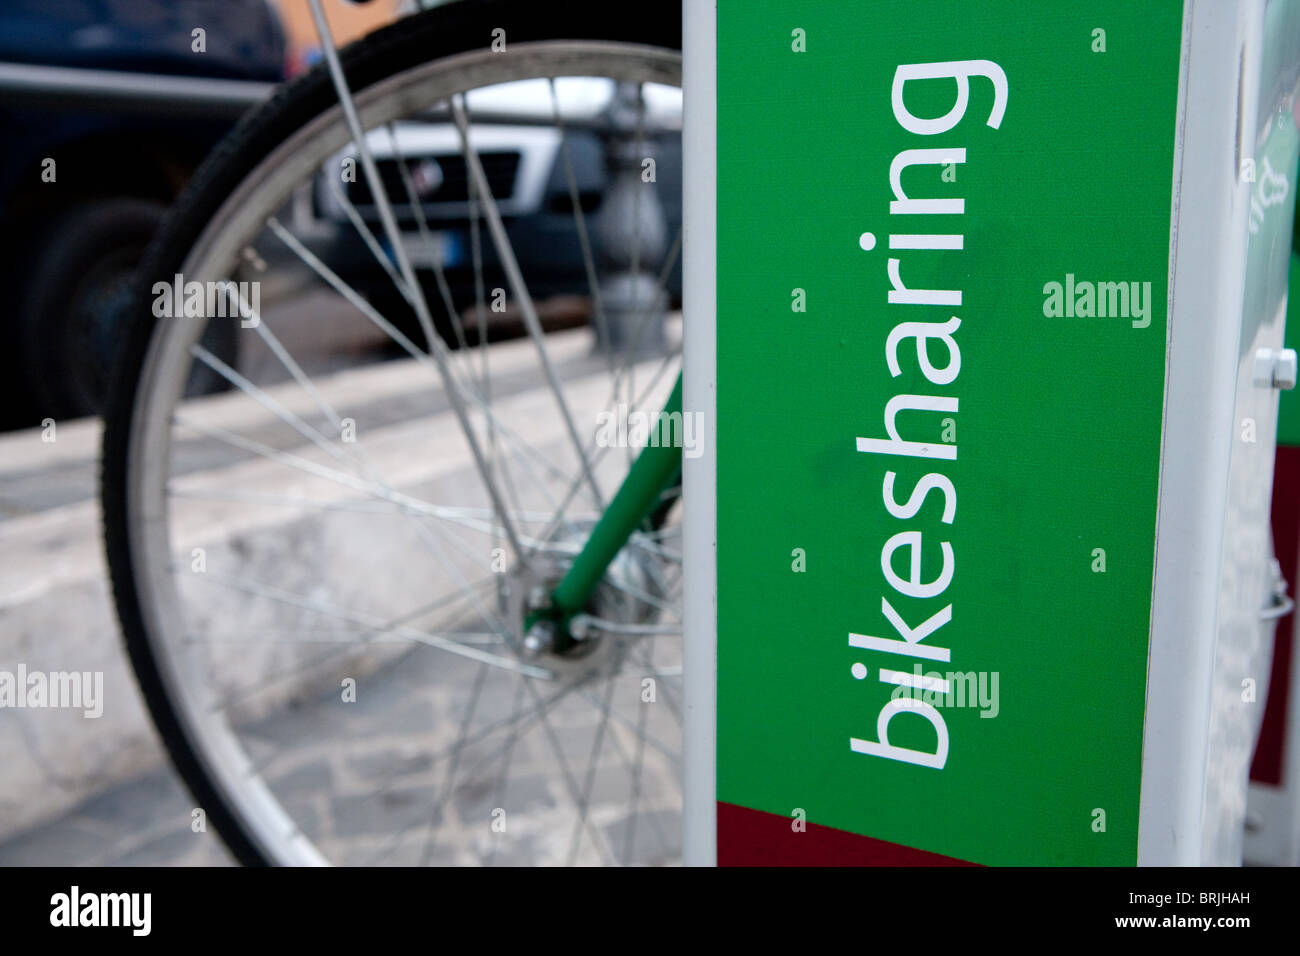 Bikesharing Bicycles for hire  cycling urban transportation city life transportation Rome Italy - Stock Image